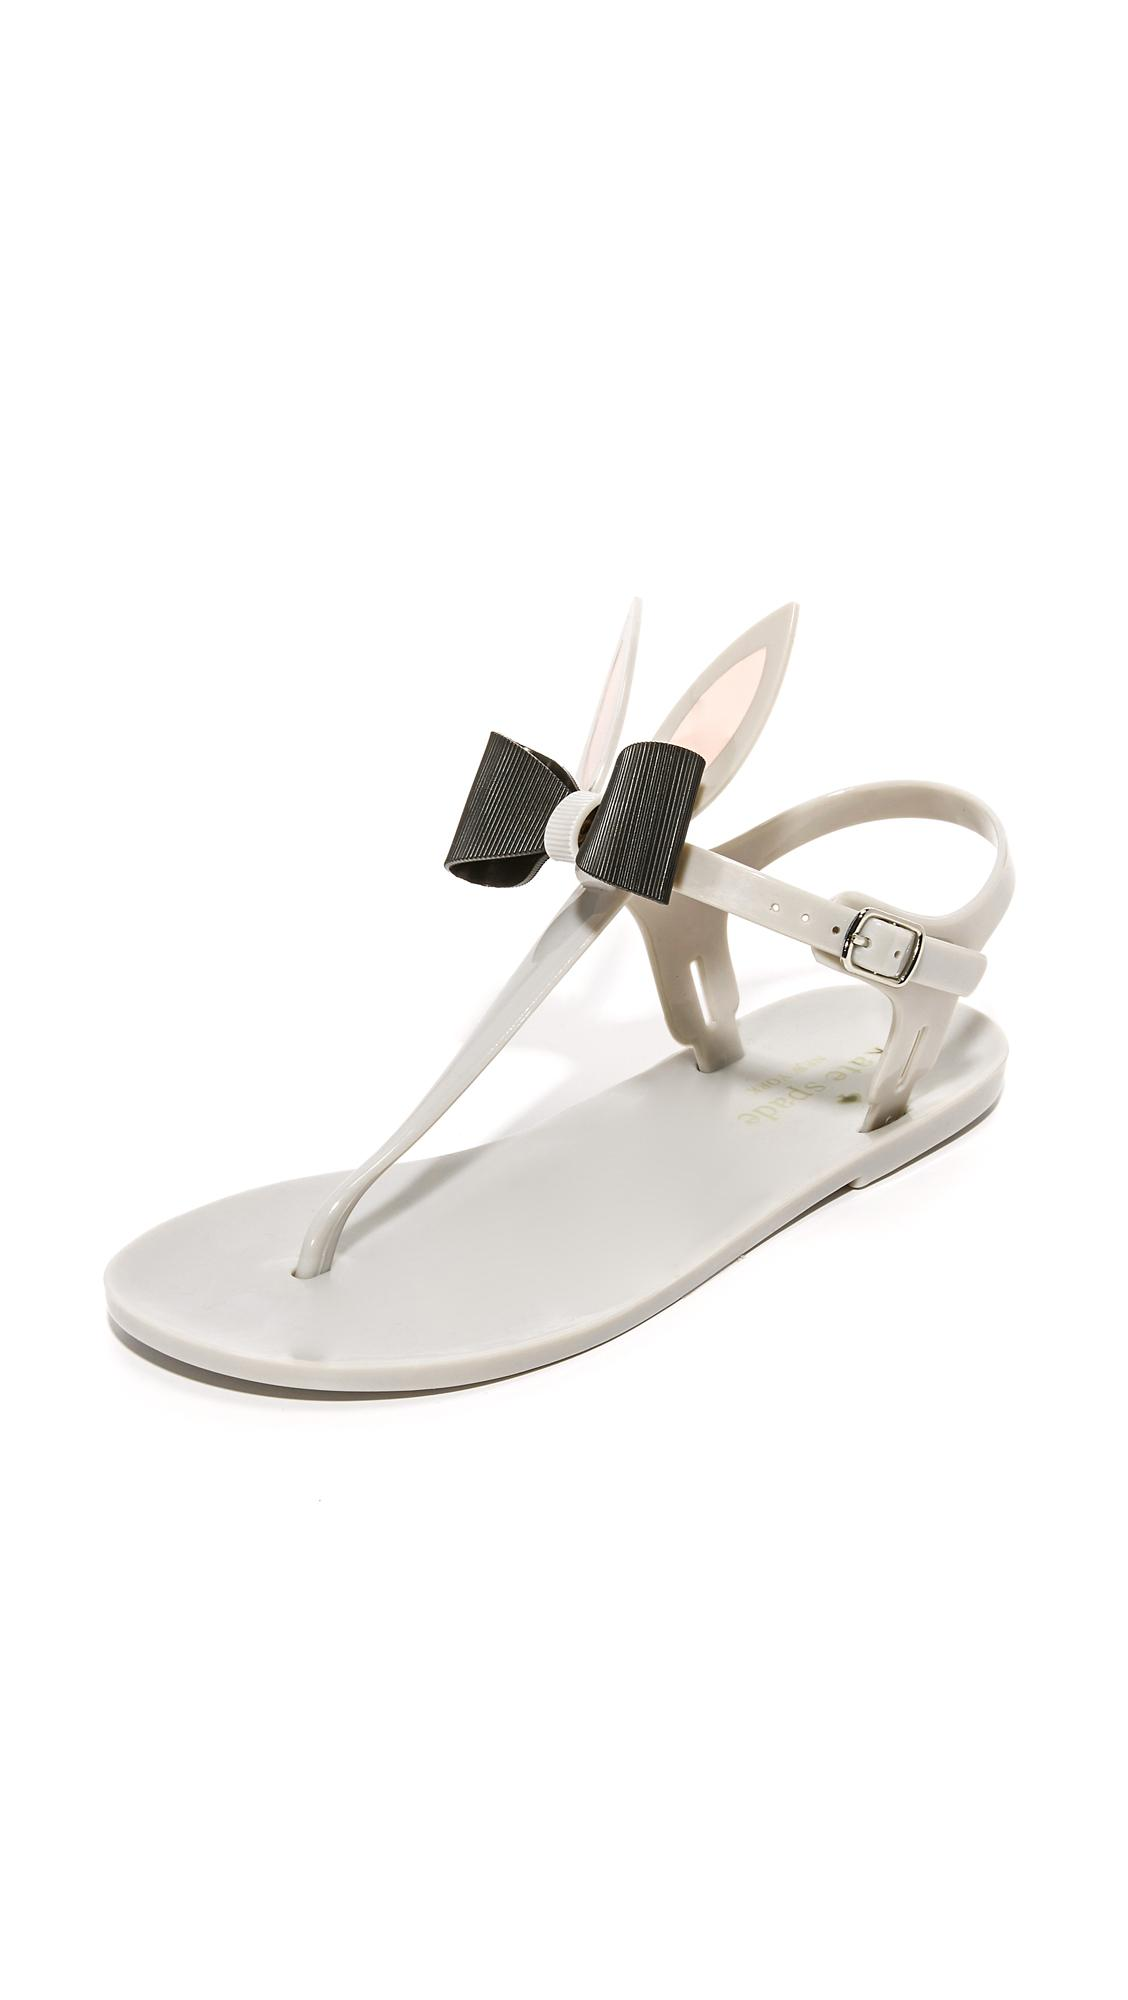 Kate Spade Freda Jelly Sandals In Gray Lyst